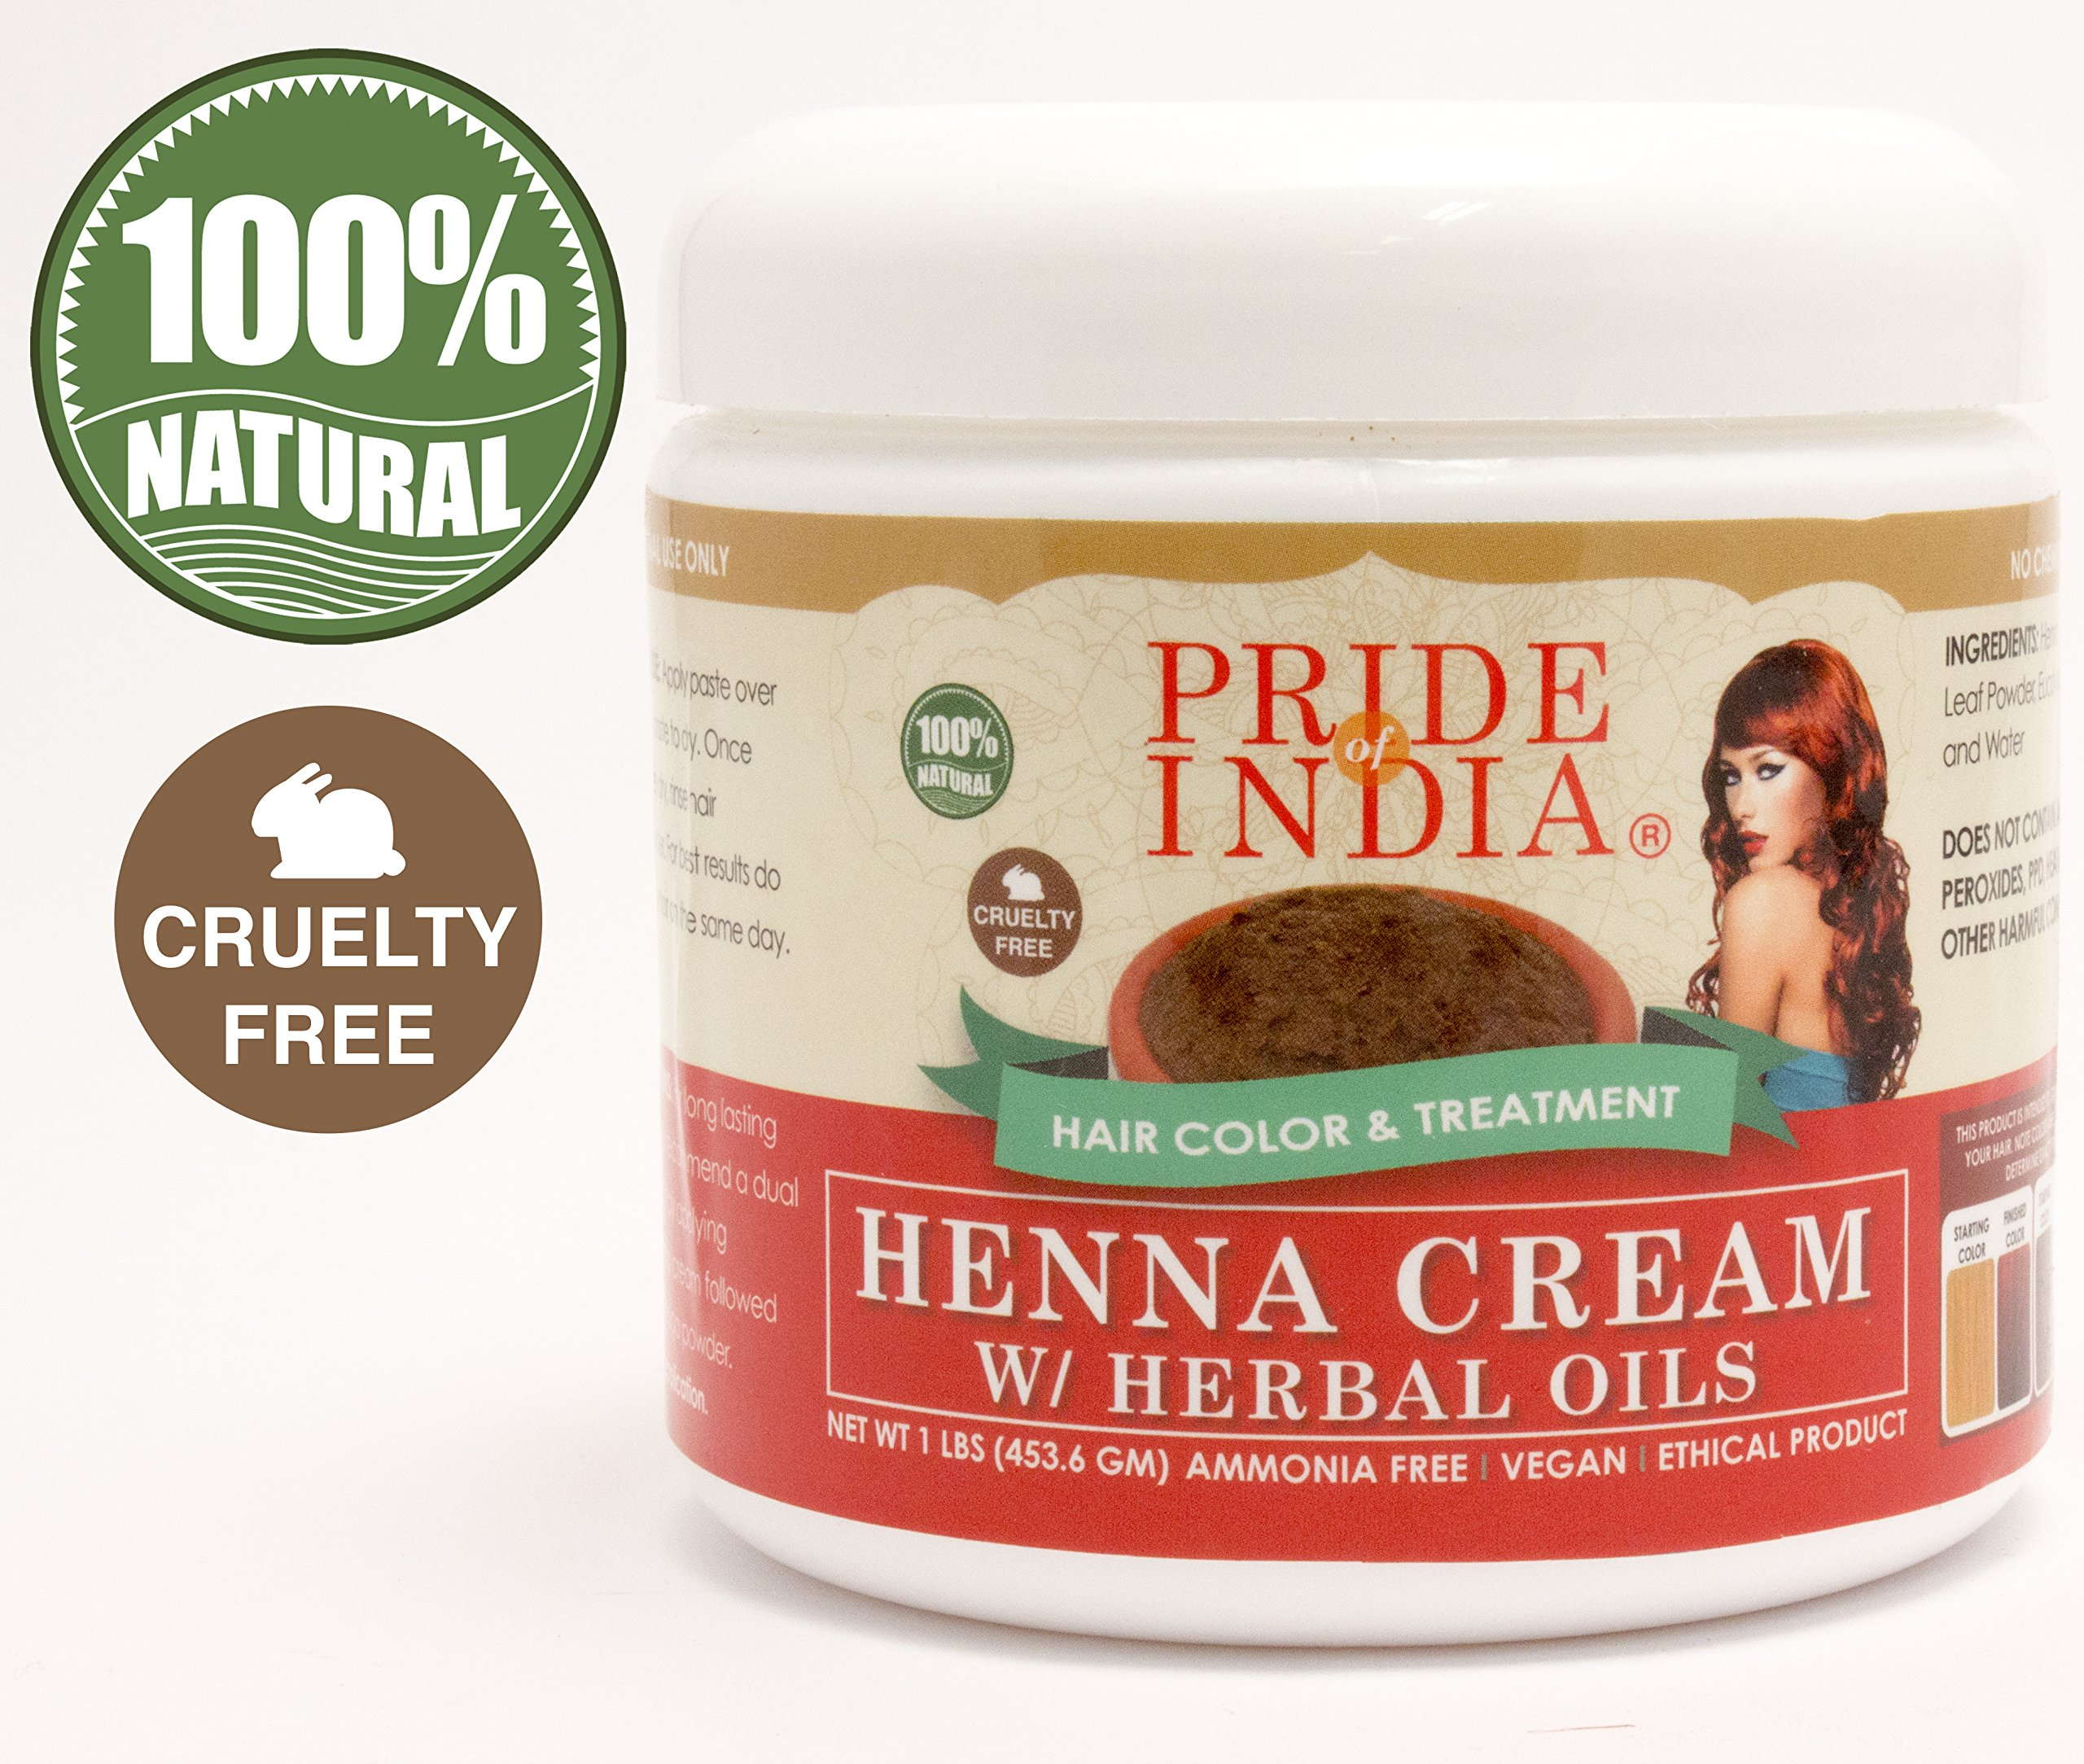 Pride Of India - Red Henna Hair Color Cream w/ Herbal Oils (Ready to use), One Pound (16oz) Jar - 100% Natural (No Chemicals/Dyes) REGULAR PRICE: $19.99, SALE PRICE: $14.99 by Pride Of India (Image #1)